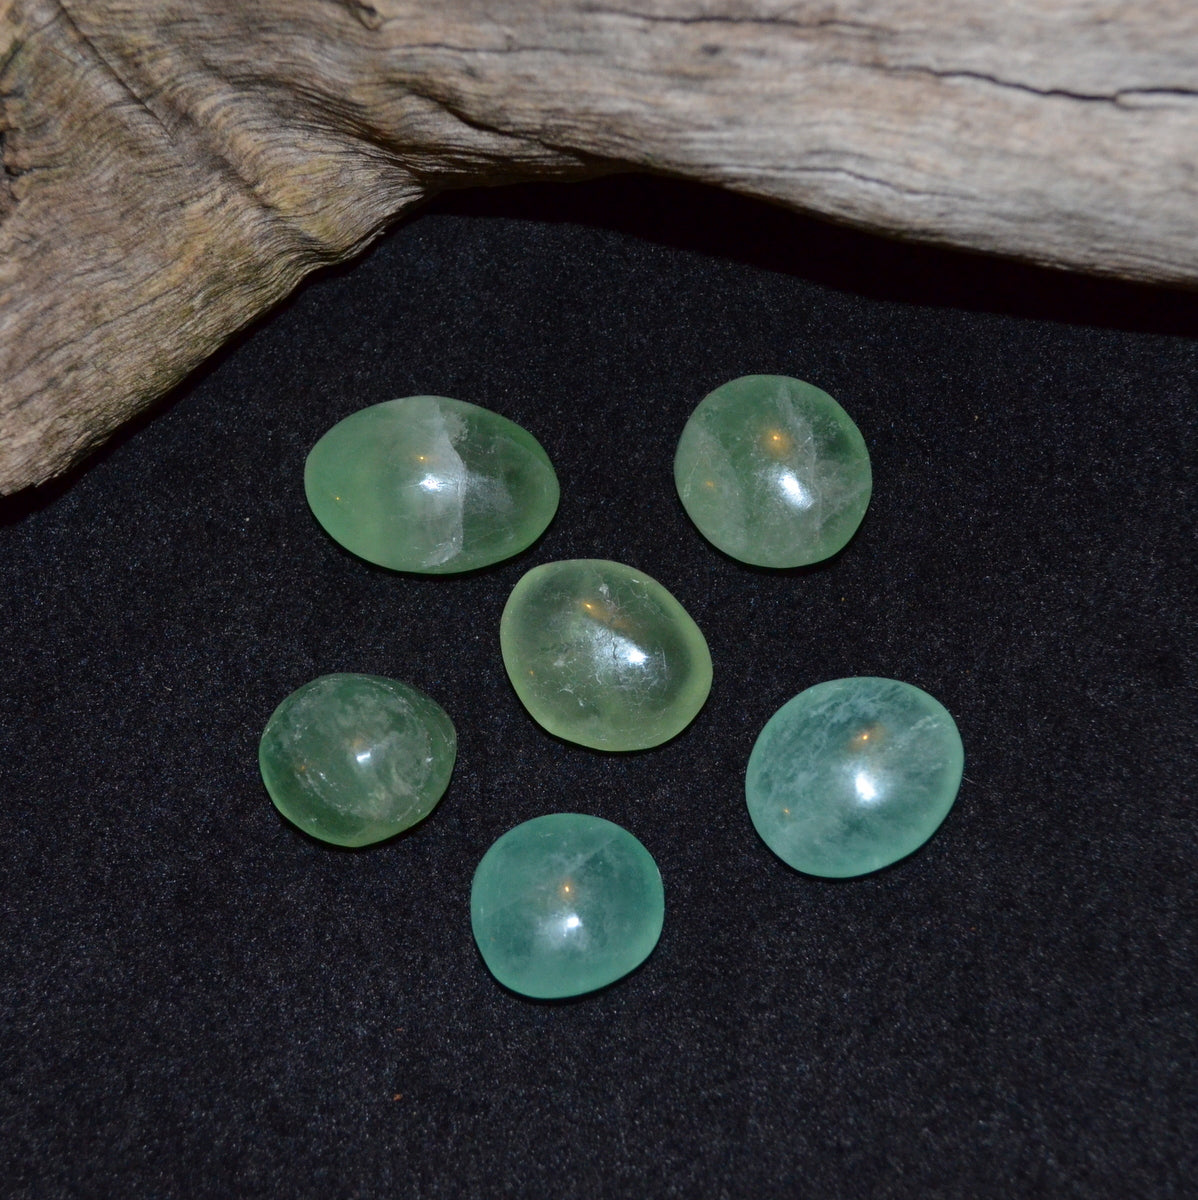 Green Fluorite Tumbles - Focus Heart Growth - Buy Now at Illiom Crystals - Afterpay Available